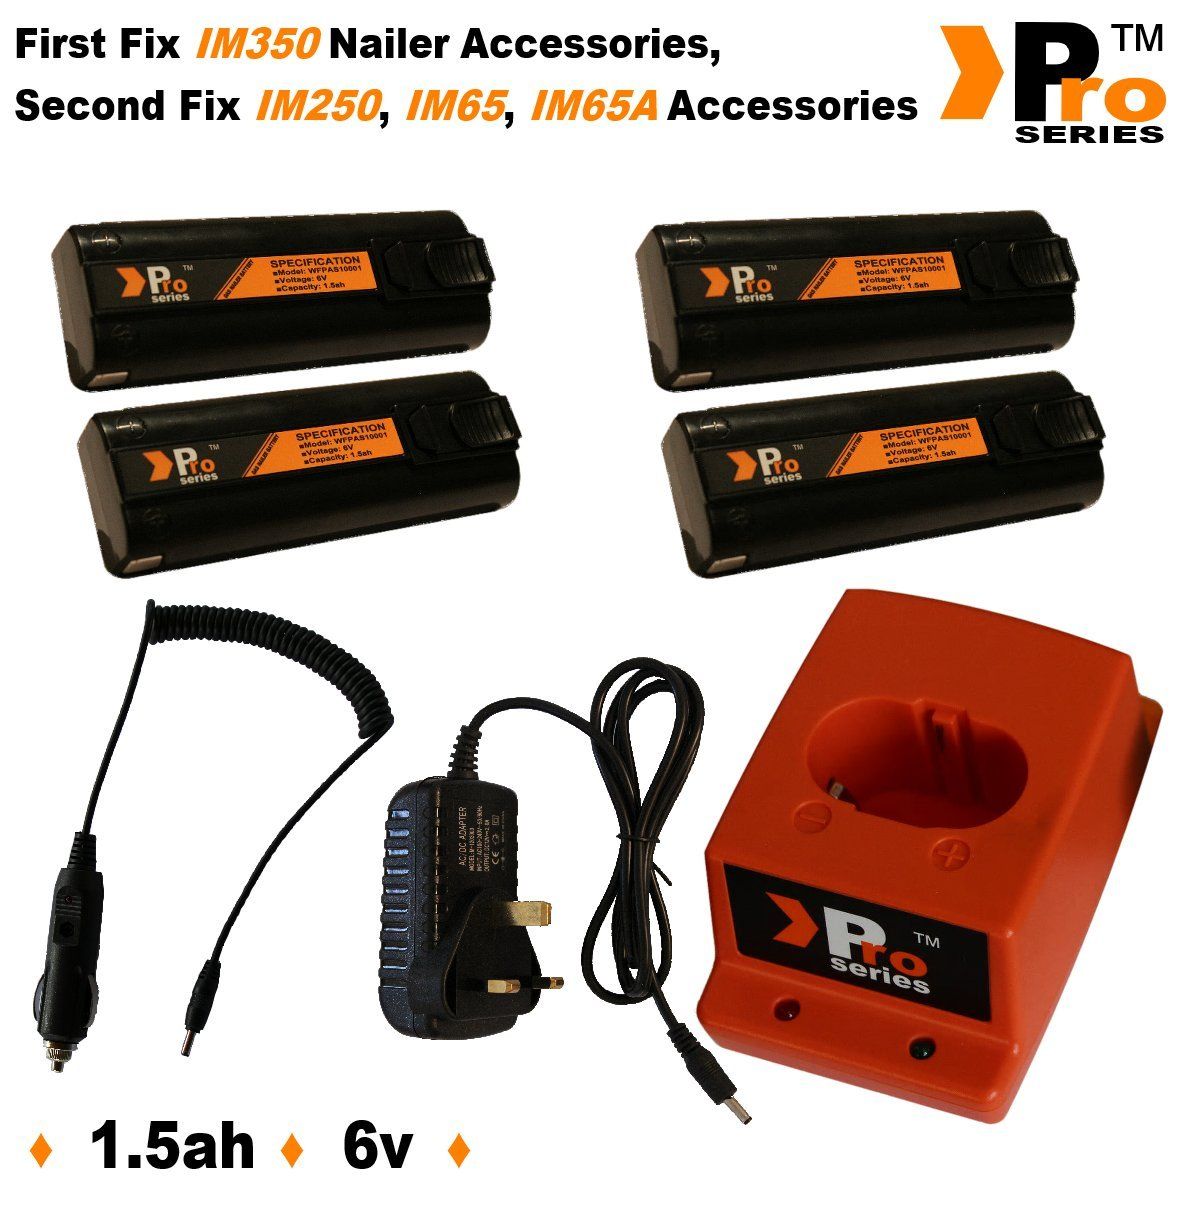 4x Replacement Battery 6V 1.5ah (Pro Series) For Paslode Nailers + Pro Seriese Charger Base + Wall Charger + In Car Charger